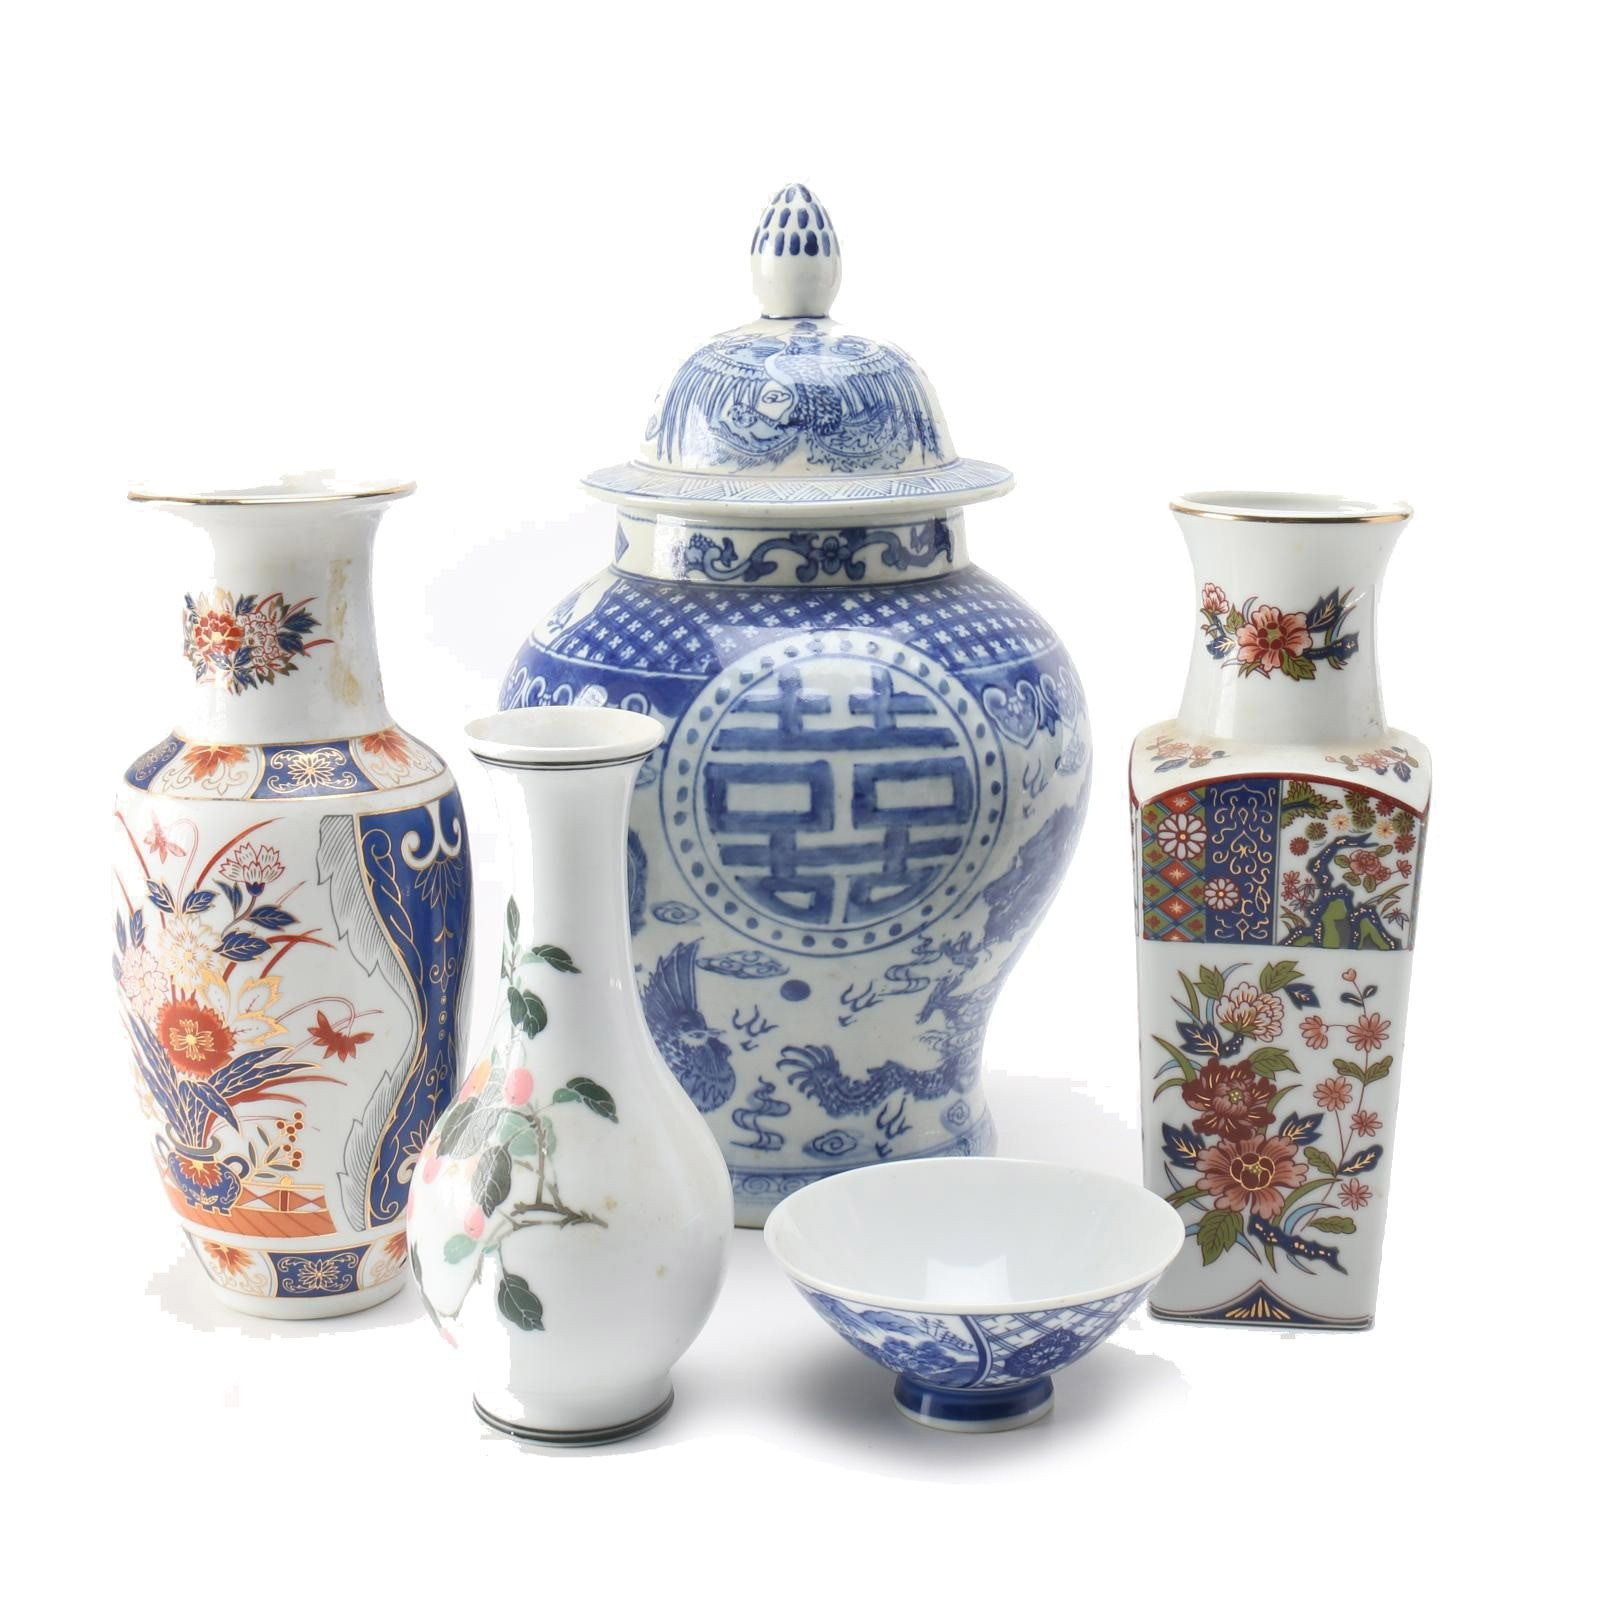 East Asian Hand-Painted Porcelain Items